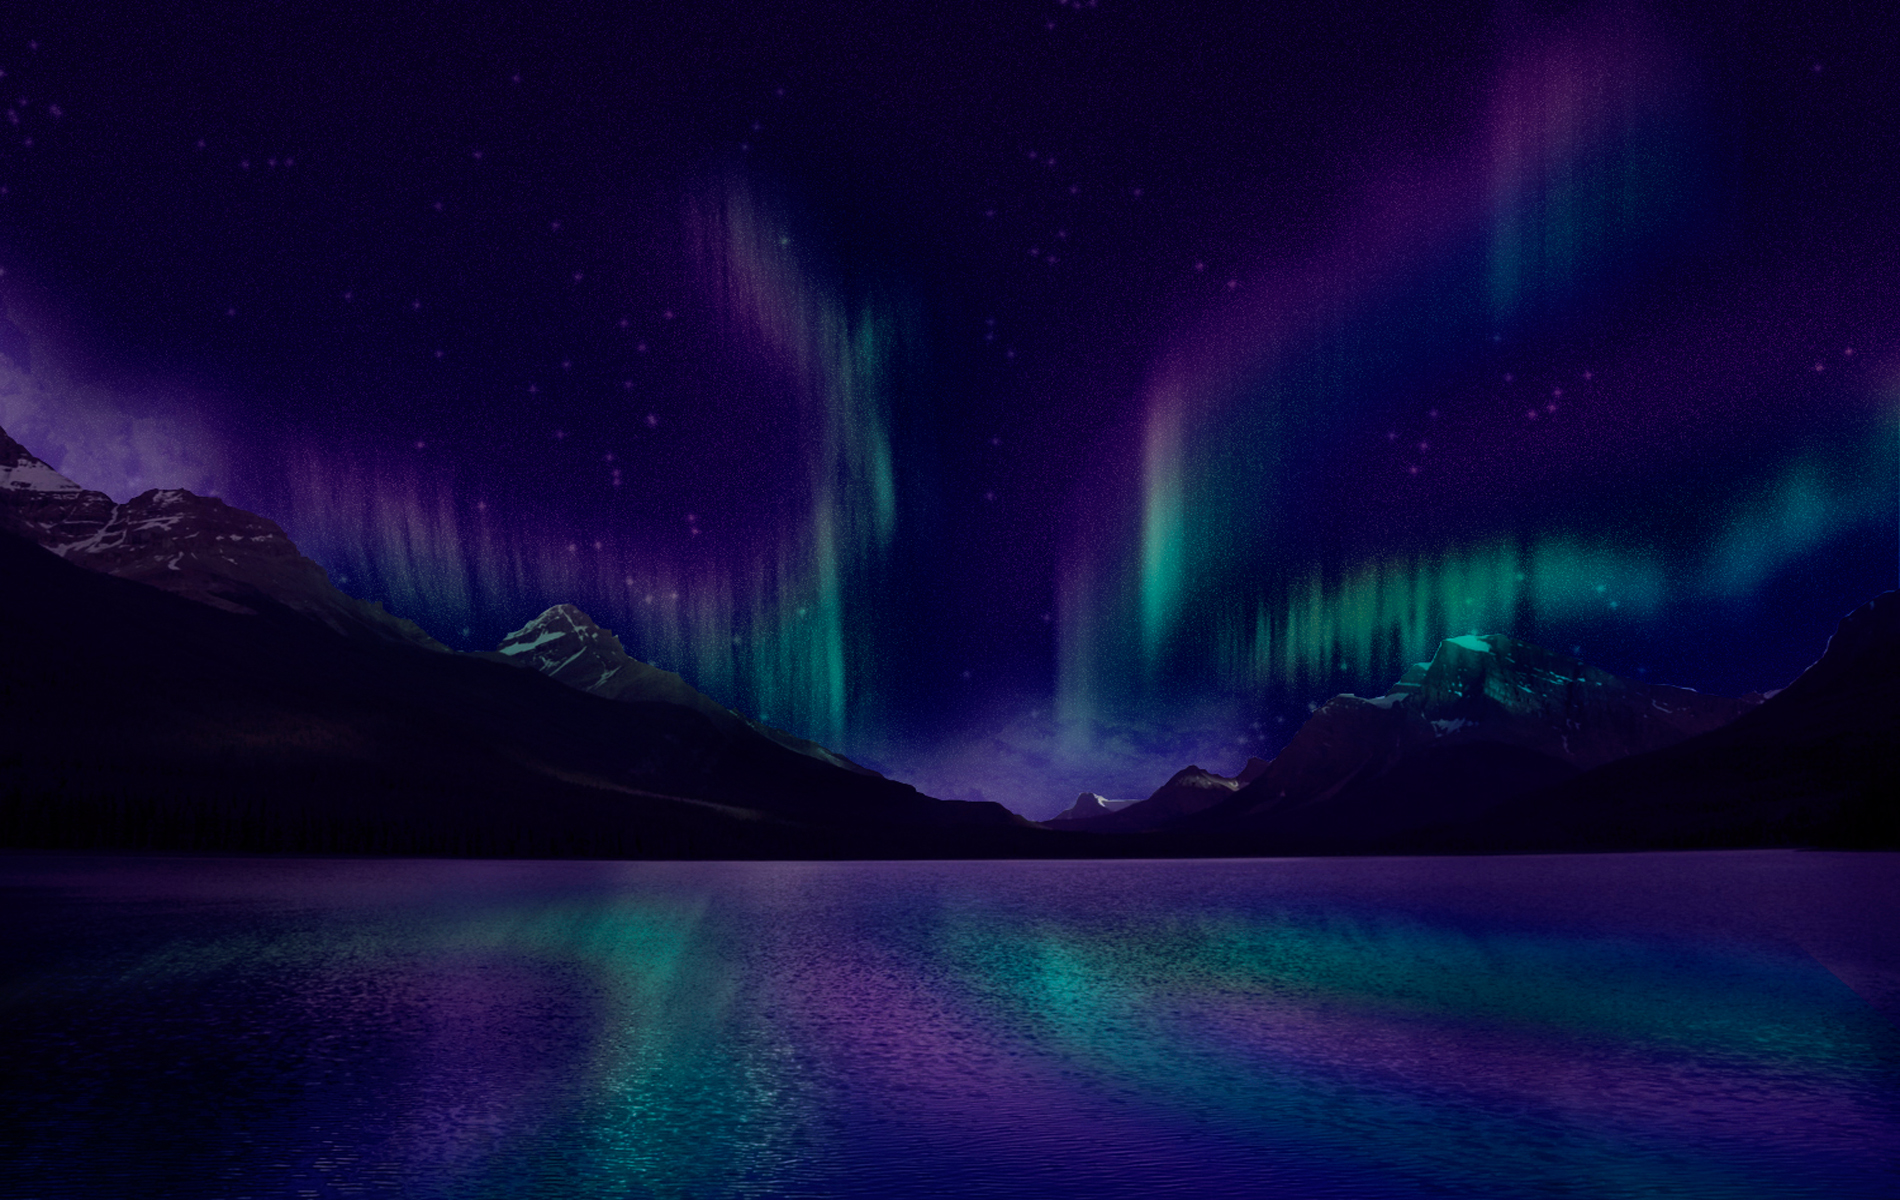 image - blue-and-purple-aurora-borealis-wallpaper-3 | animal jam